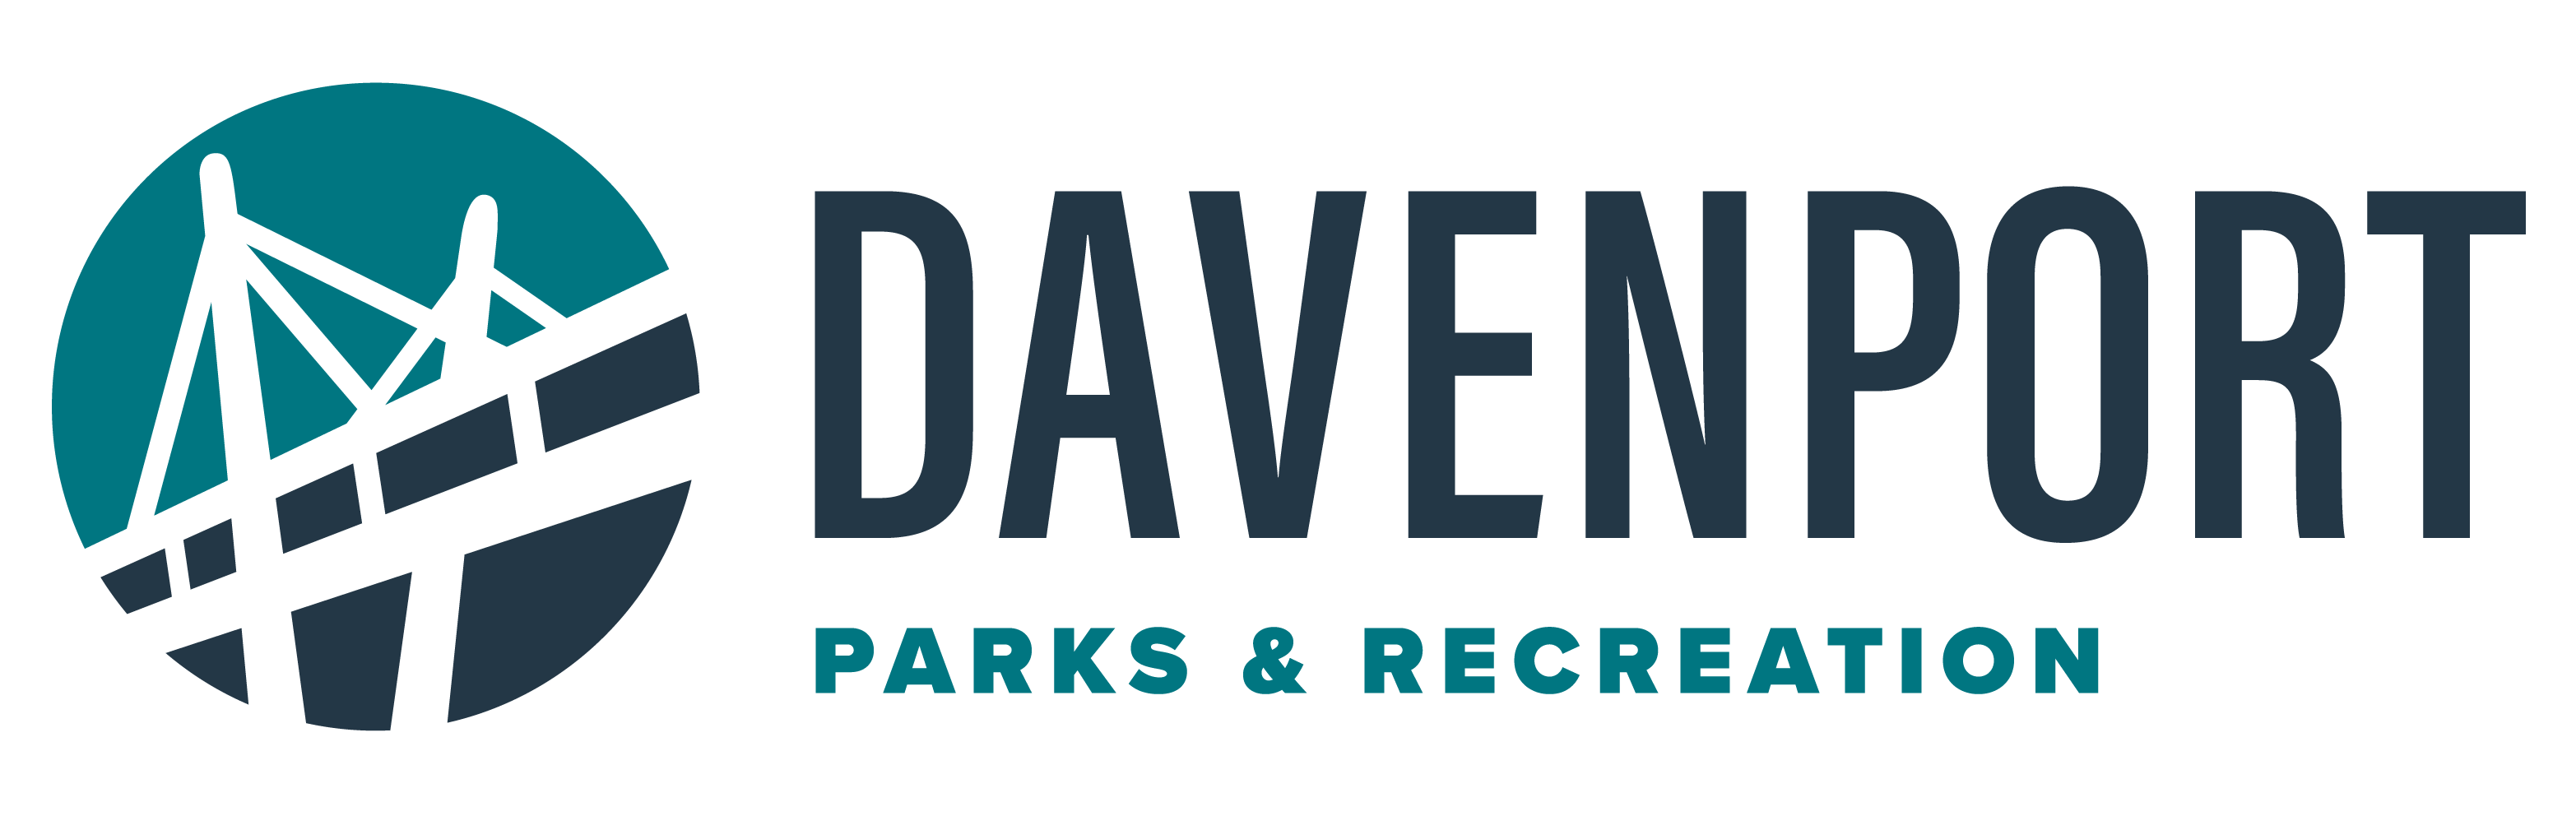 Davenport Parks and Recreation Logo